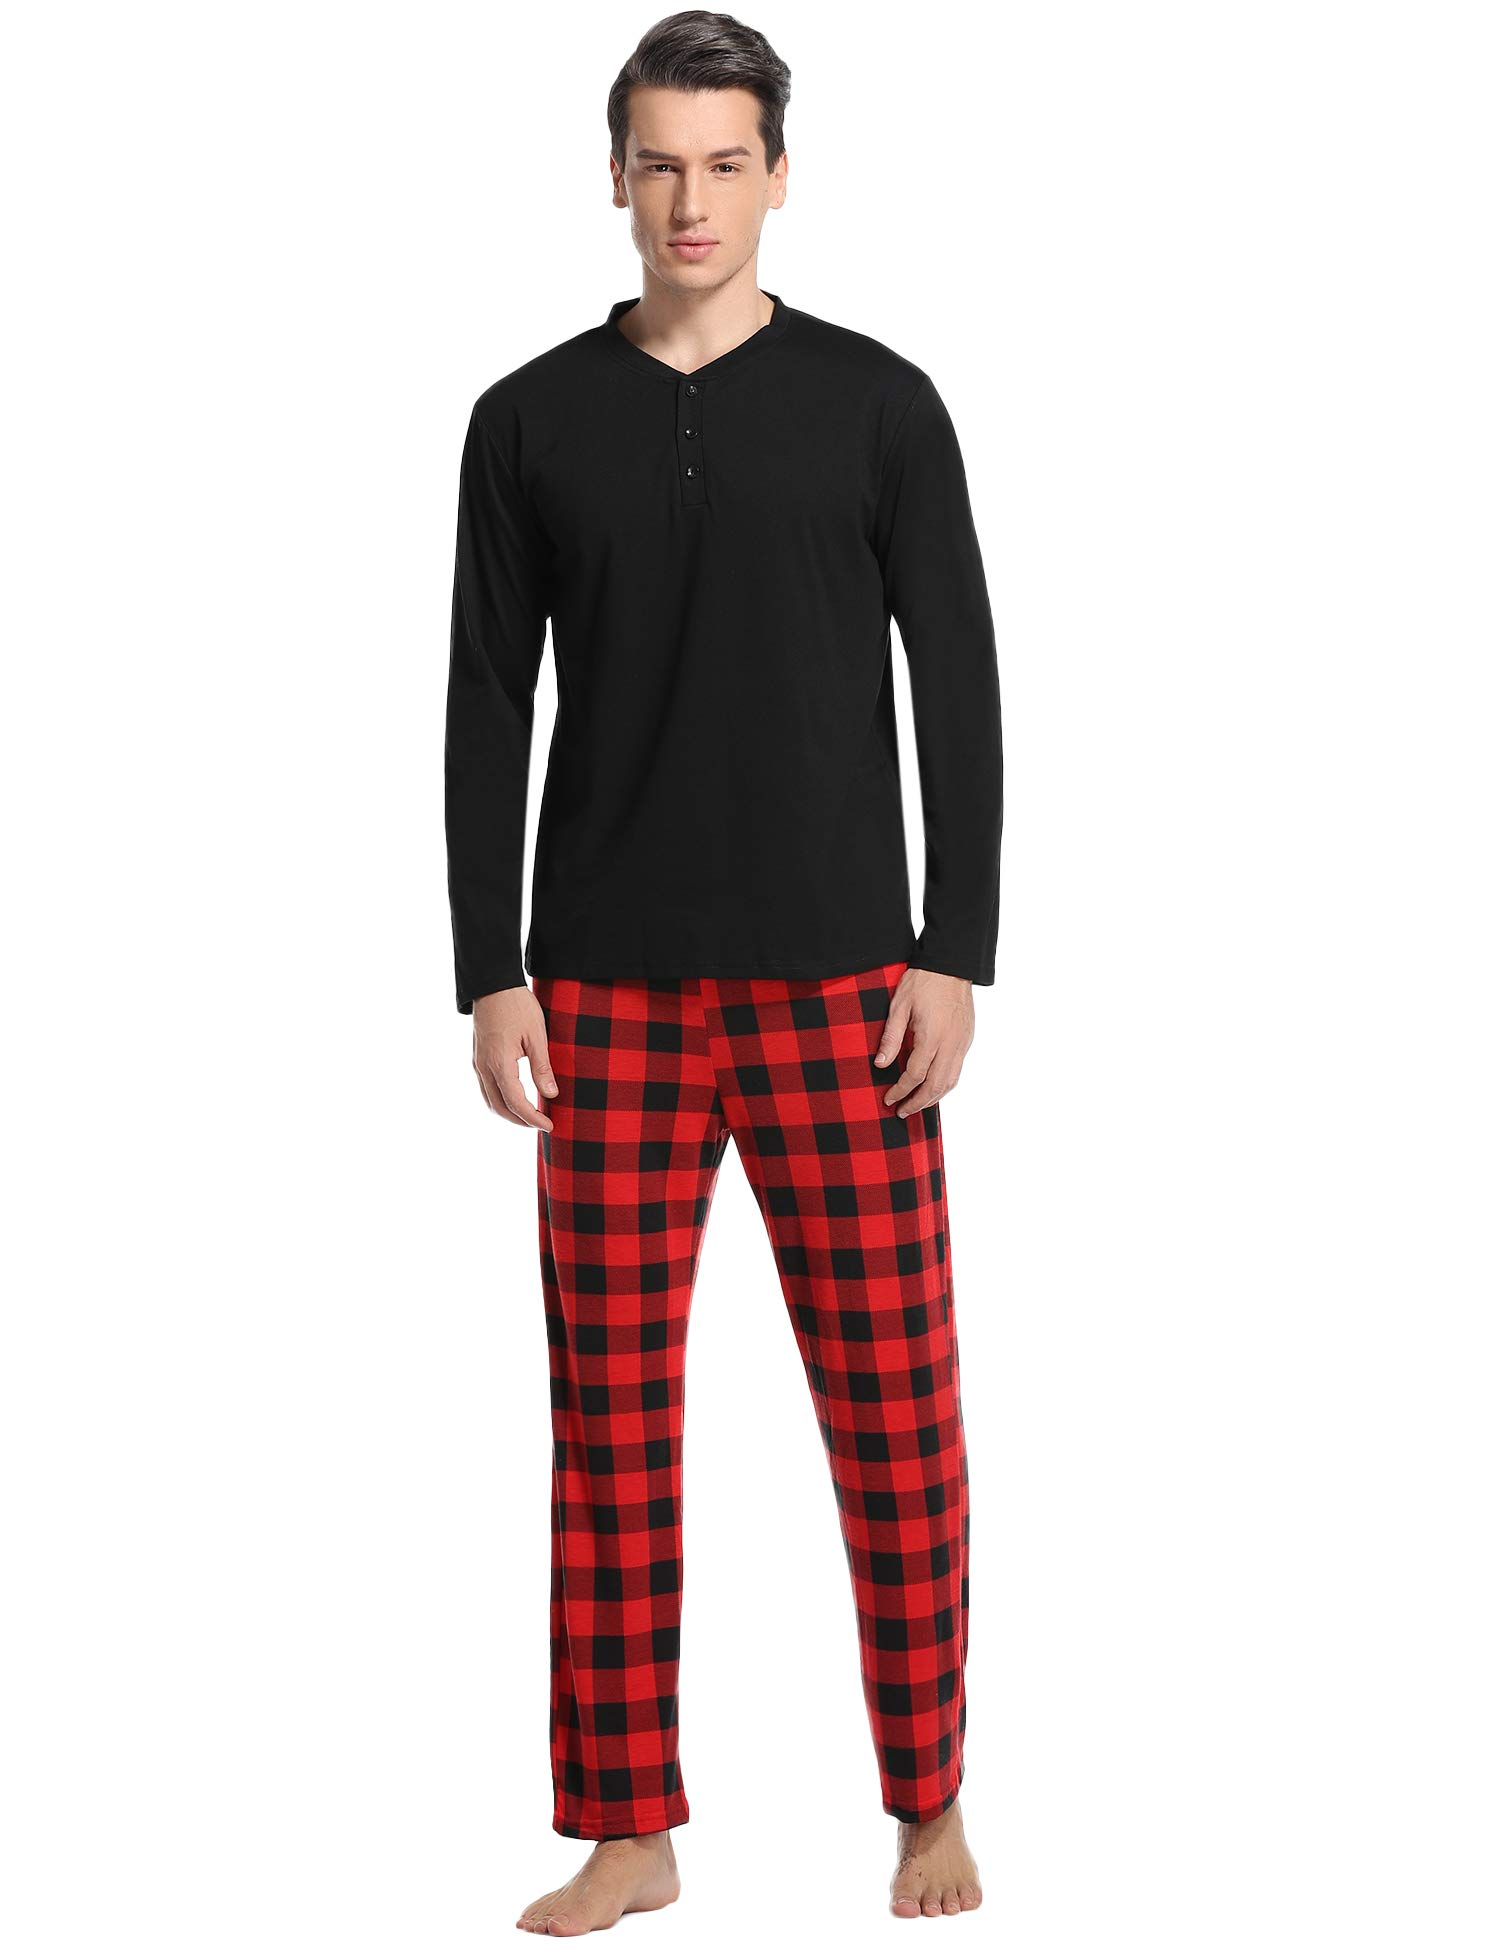 Vlazom Men's Pajama Sets Long Sleeve Top and Plaid Fleece Pants for Men Sleepwear PJs